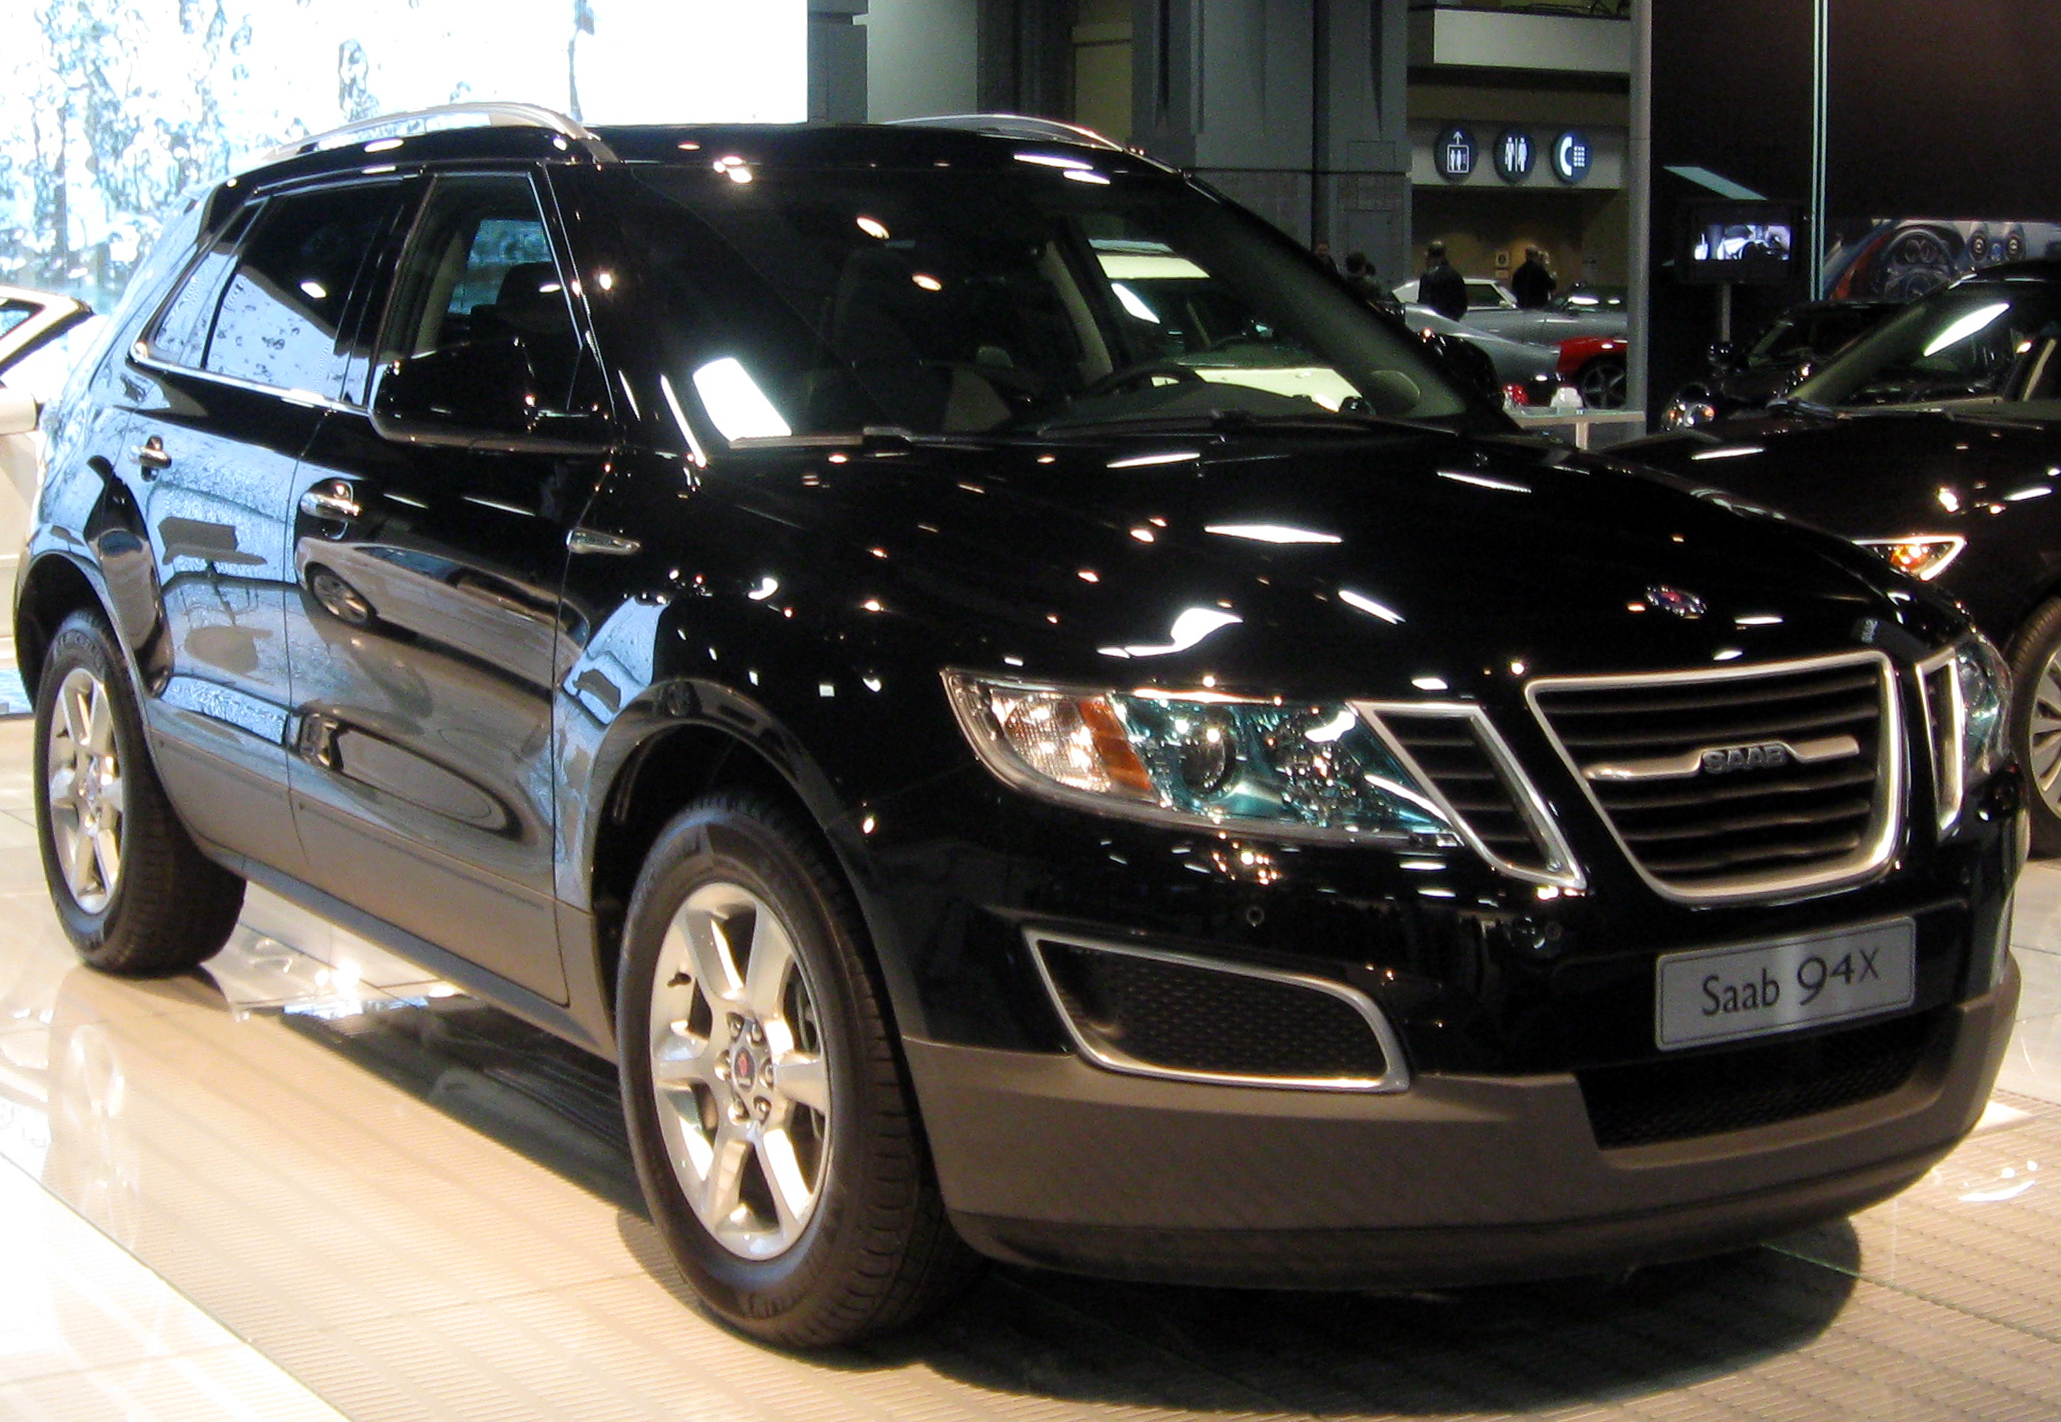 Pictures of saab 9-4x